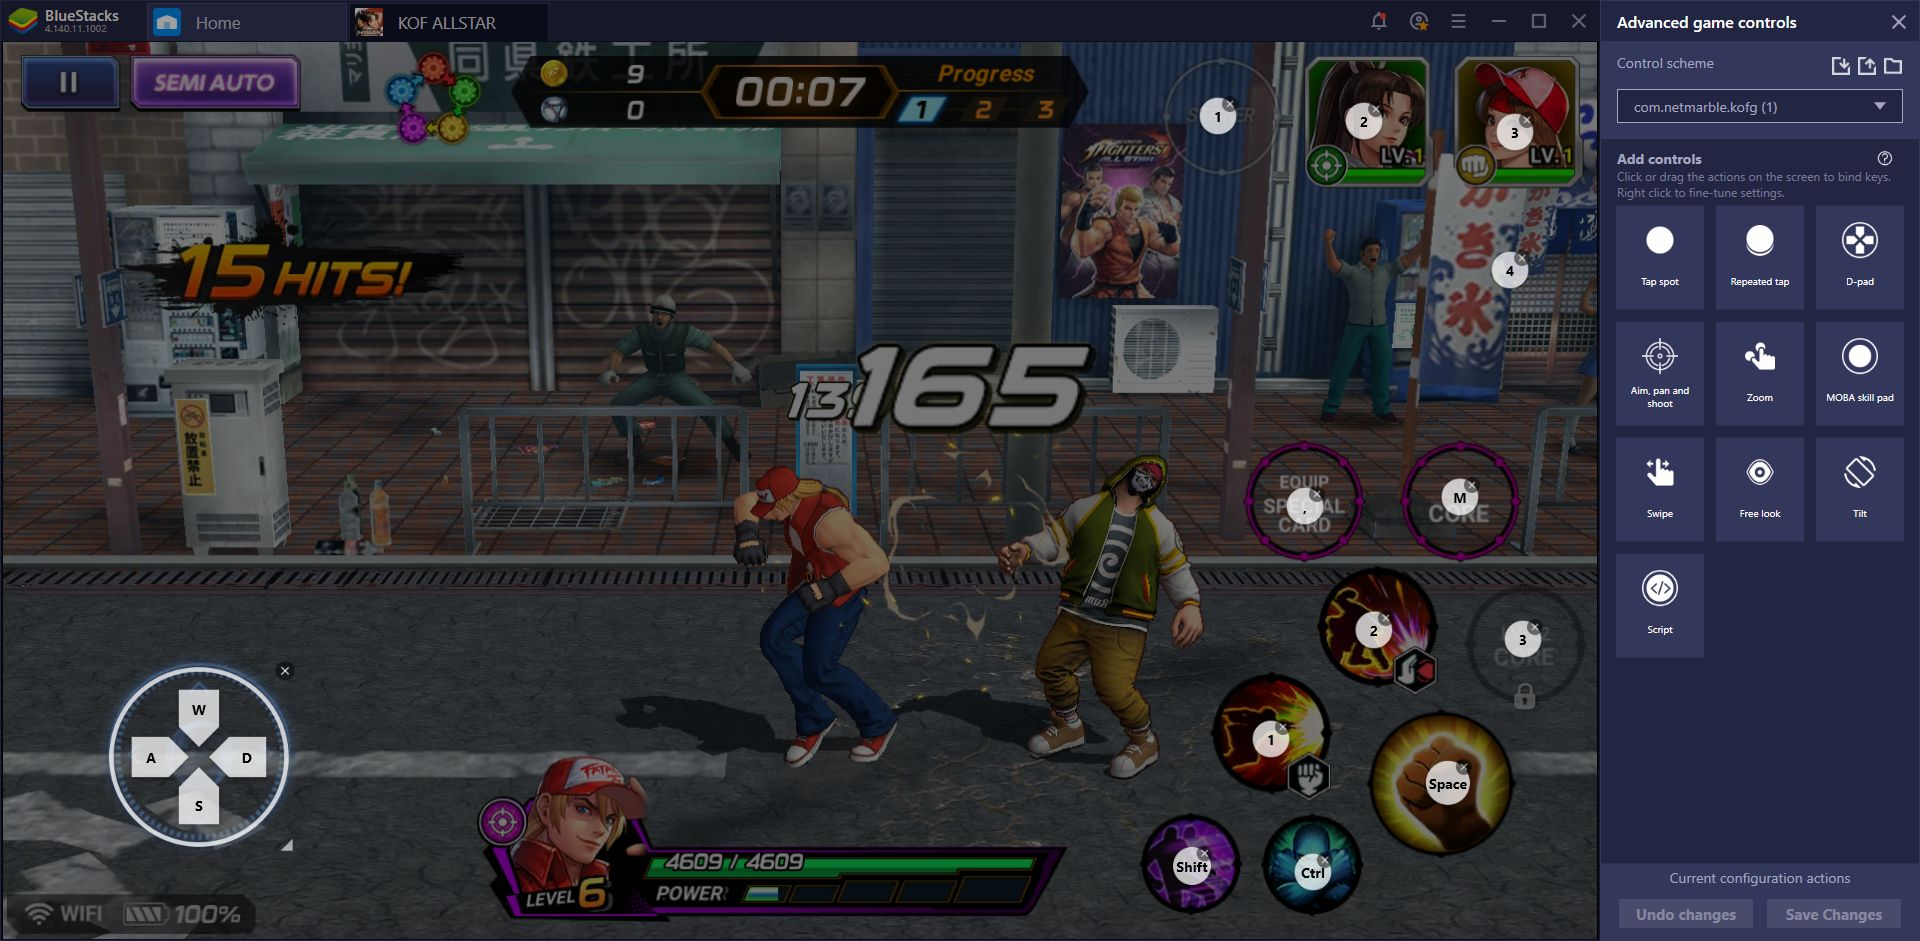 How to Play The King of Fighters ALLSTAR on Your PC Using